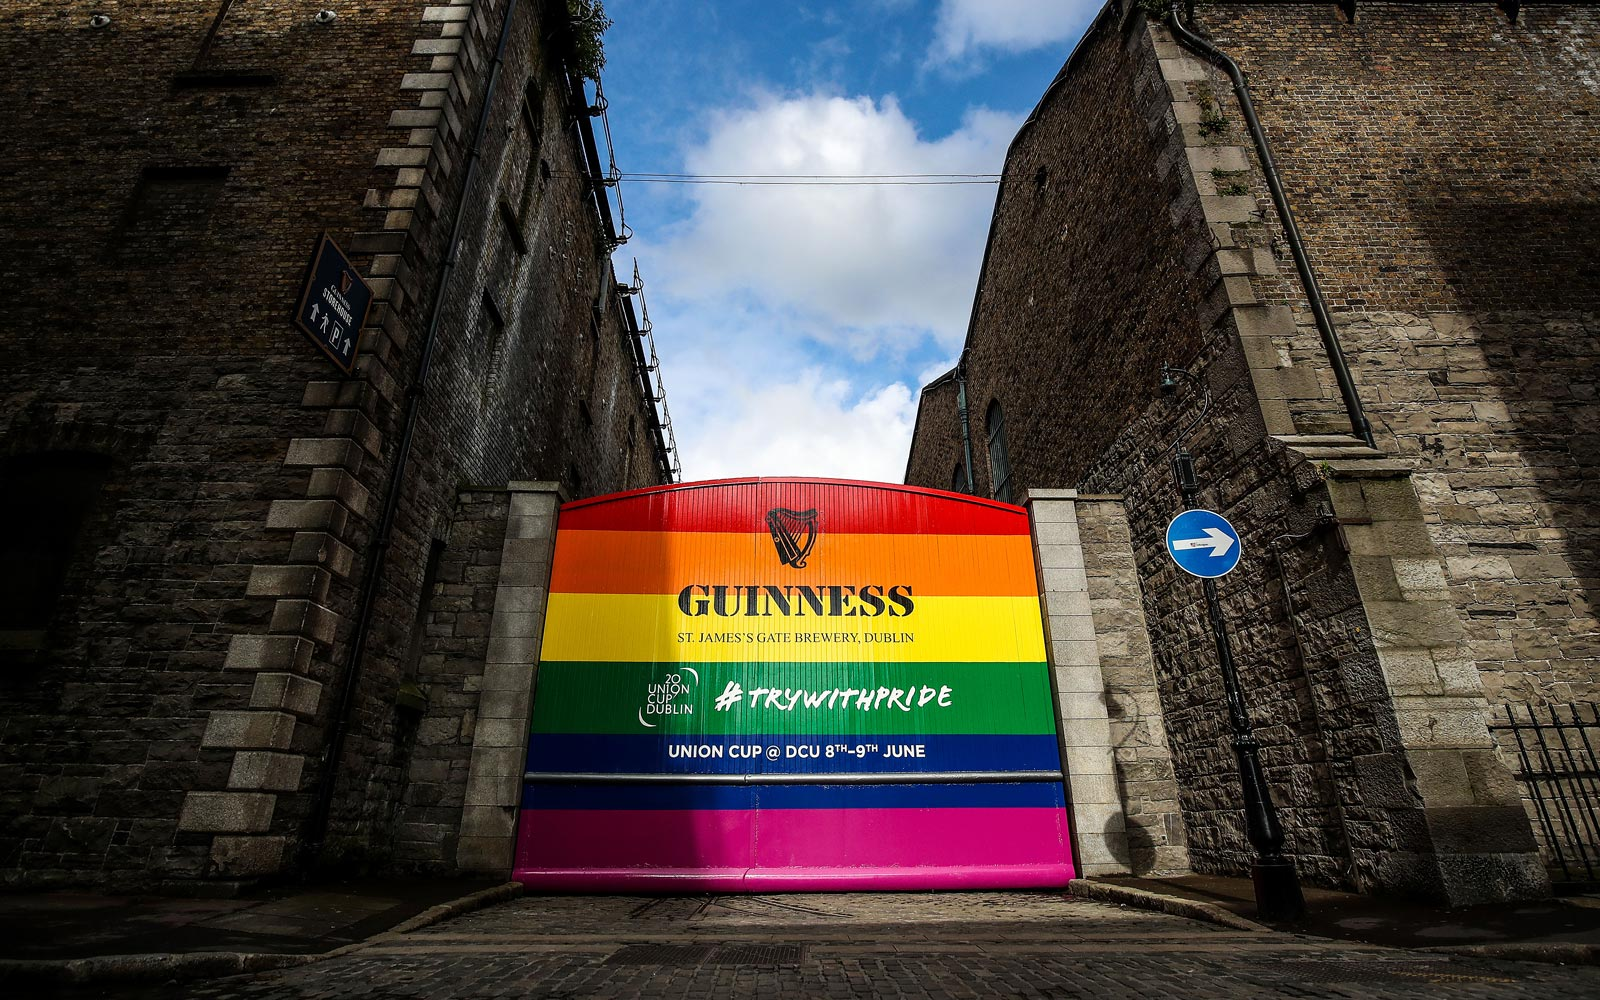 The GUINNESS Gates at Rainsford Street have been given a splash of colour